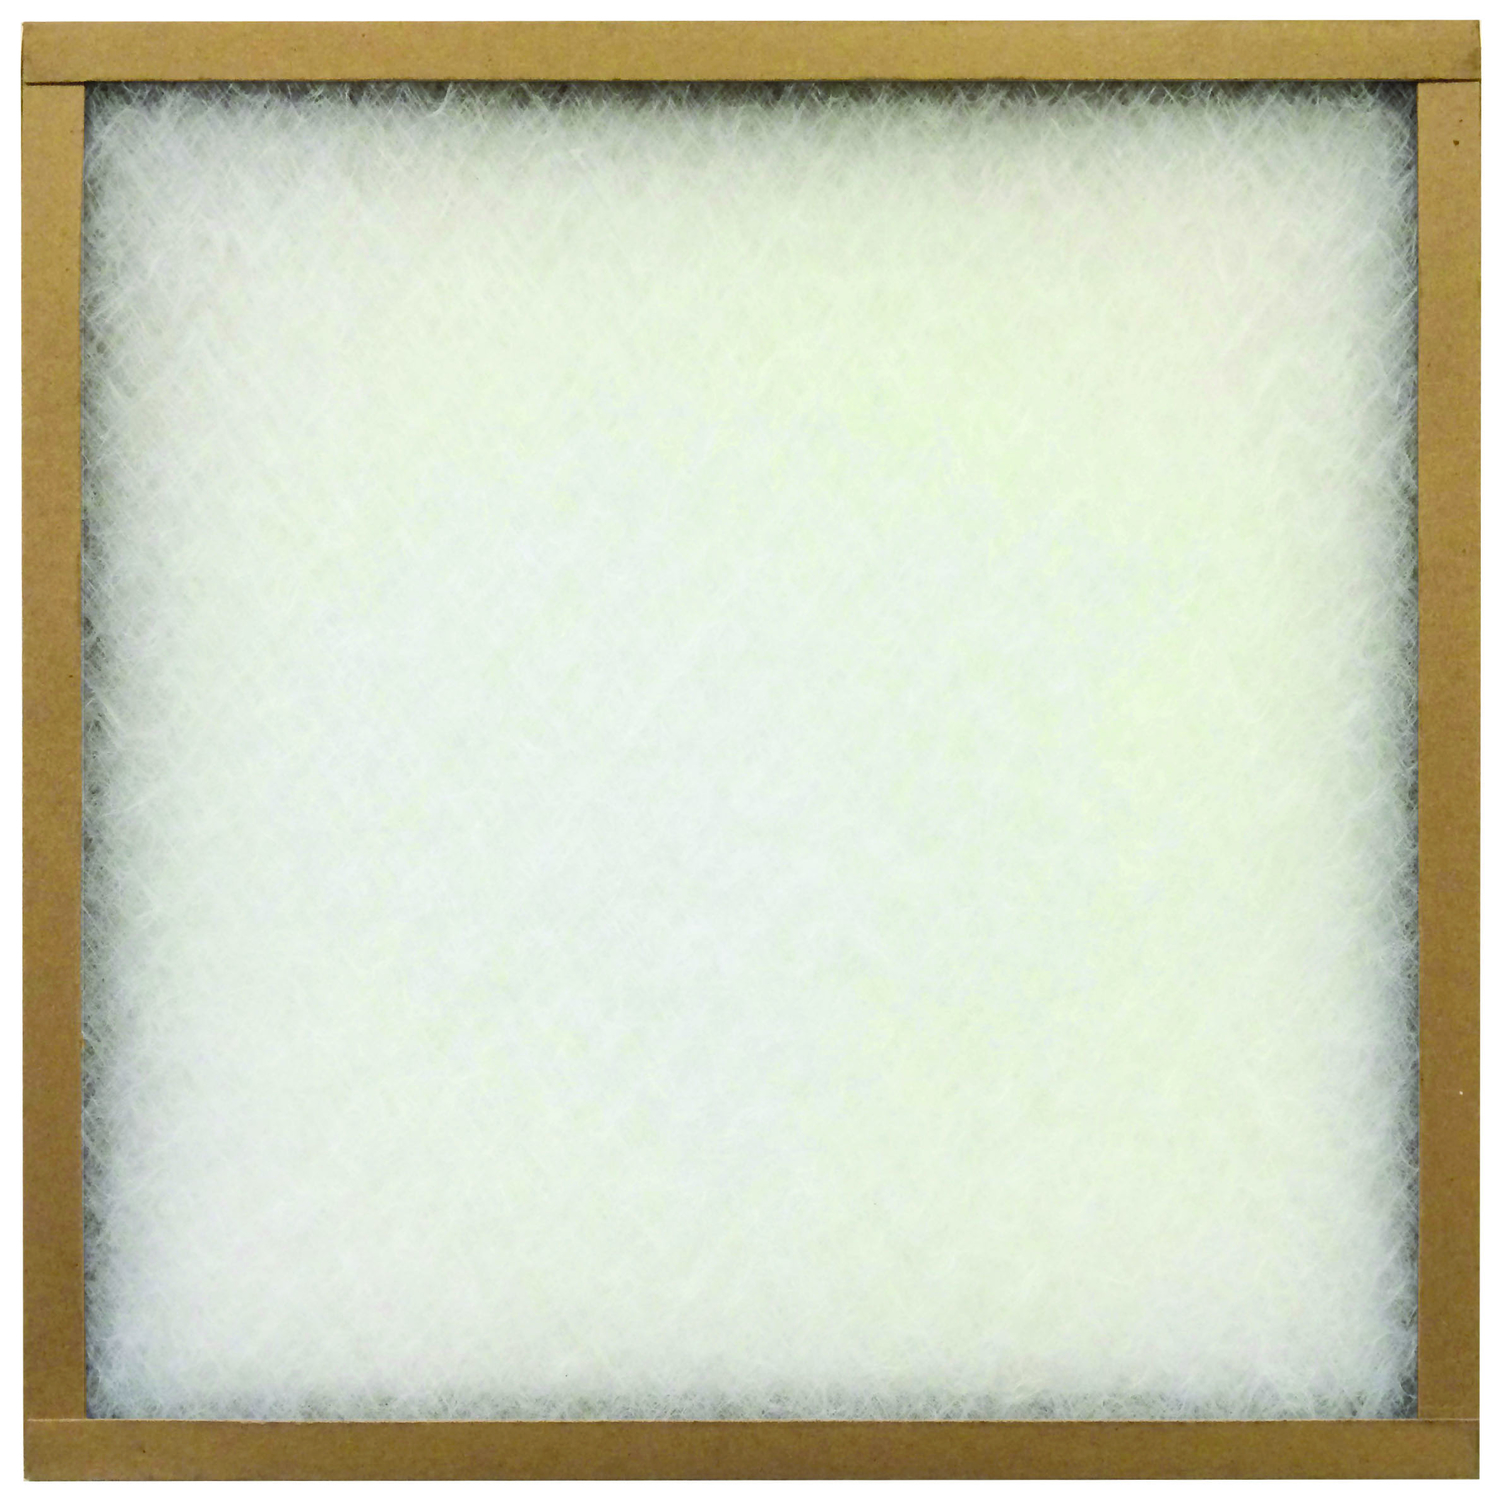 Flanders-Precisionaire  30 in. H x 20 in. W x 1 in. D Fiberglass  Air Filter